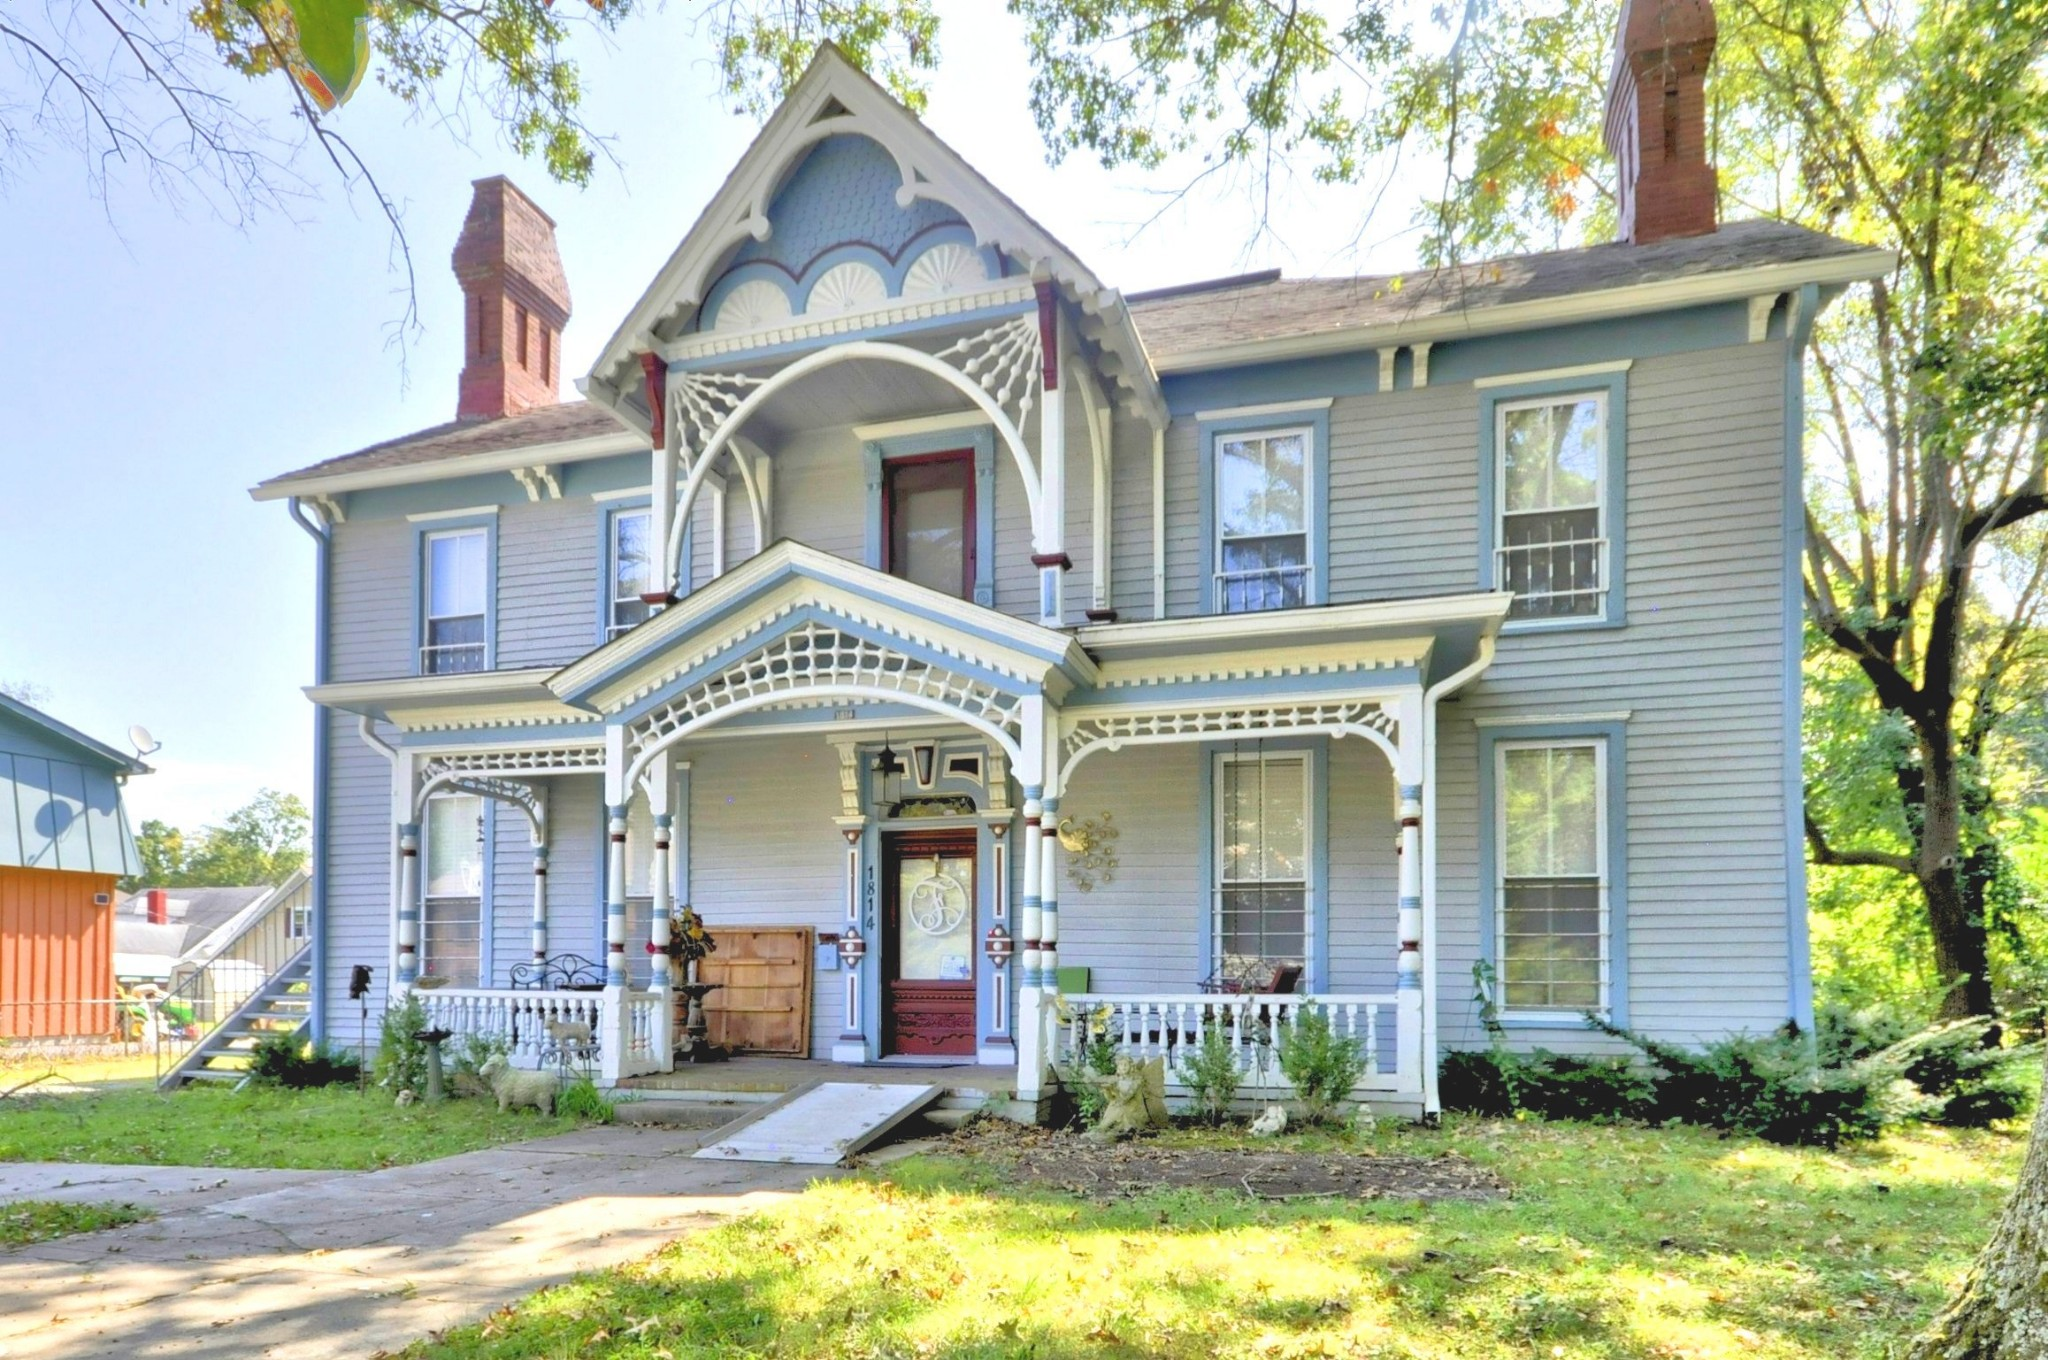 1814 S MAIN ST Property Photo - Hopkinsville, KY real estate listing